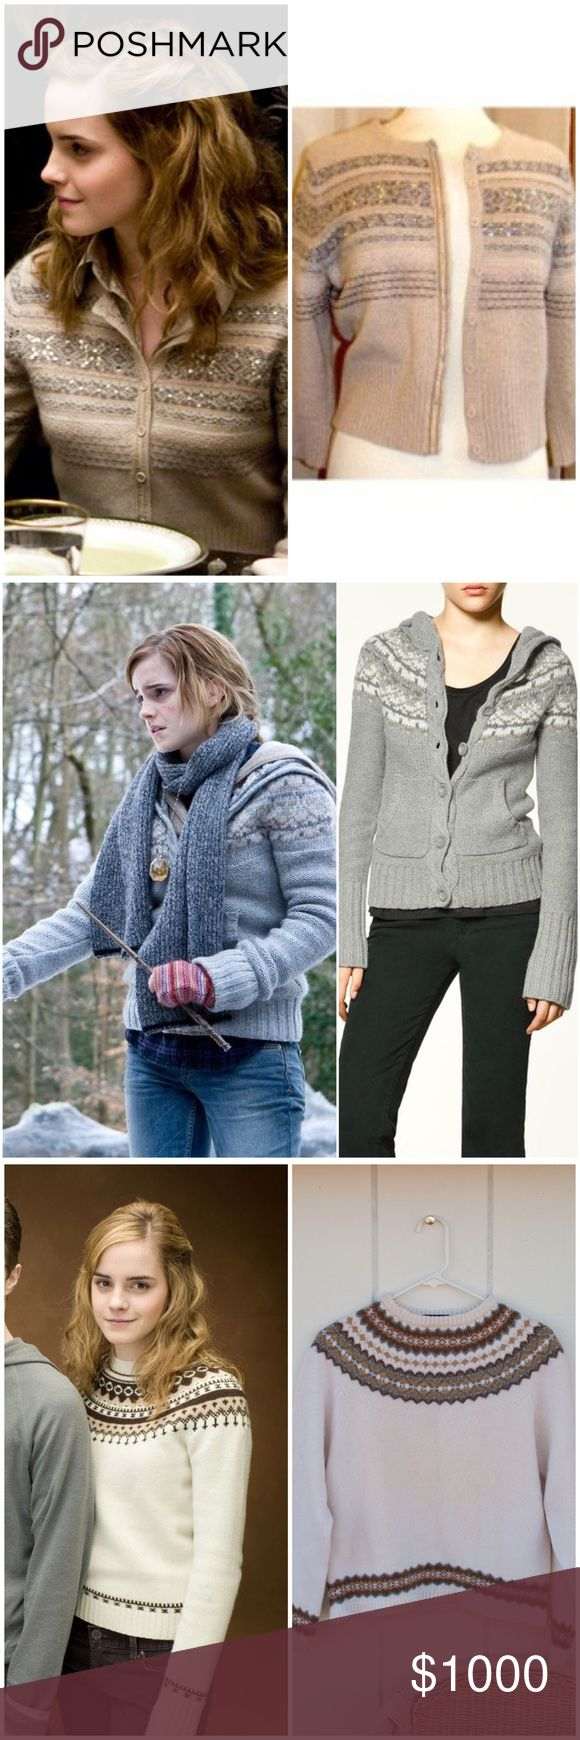 ISO Hermione Granger from Harry Potter, SA items Hi! I'm currently in search of these SA Hermione Granger items! Any help finding her clothes, accessories, bags, shoes, etc. would really help me out in my Harry Potter trio cosplay! This has been an ongoing search for 7 years, so any help finding these would be much appreciated!  ISO: - Next Cream Fairisle Sequin Cardigan - Zara Grey Fairisle Knitted Cardigan - Gap Fairisle Jumper - Next Grey Ribbed Neck Cardigan - Gryffindor Crest T-shirt…